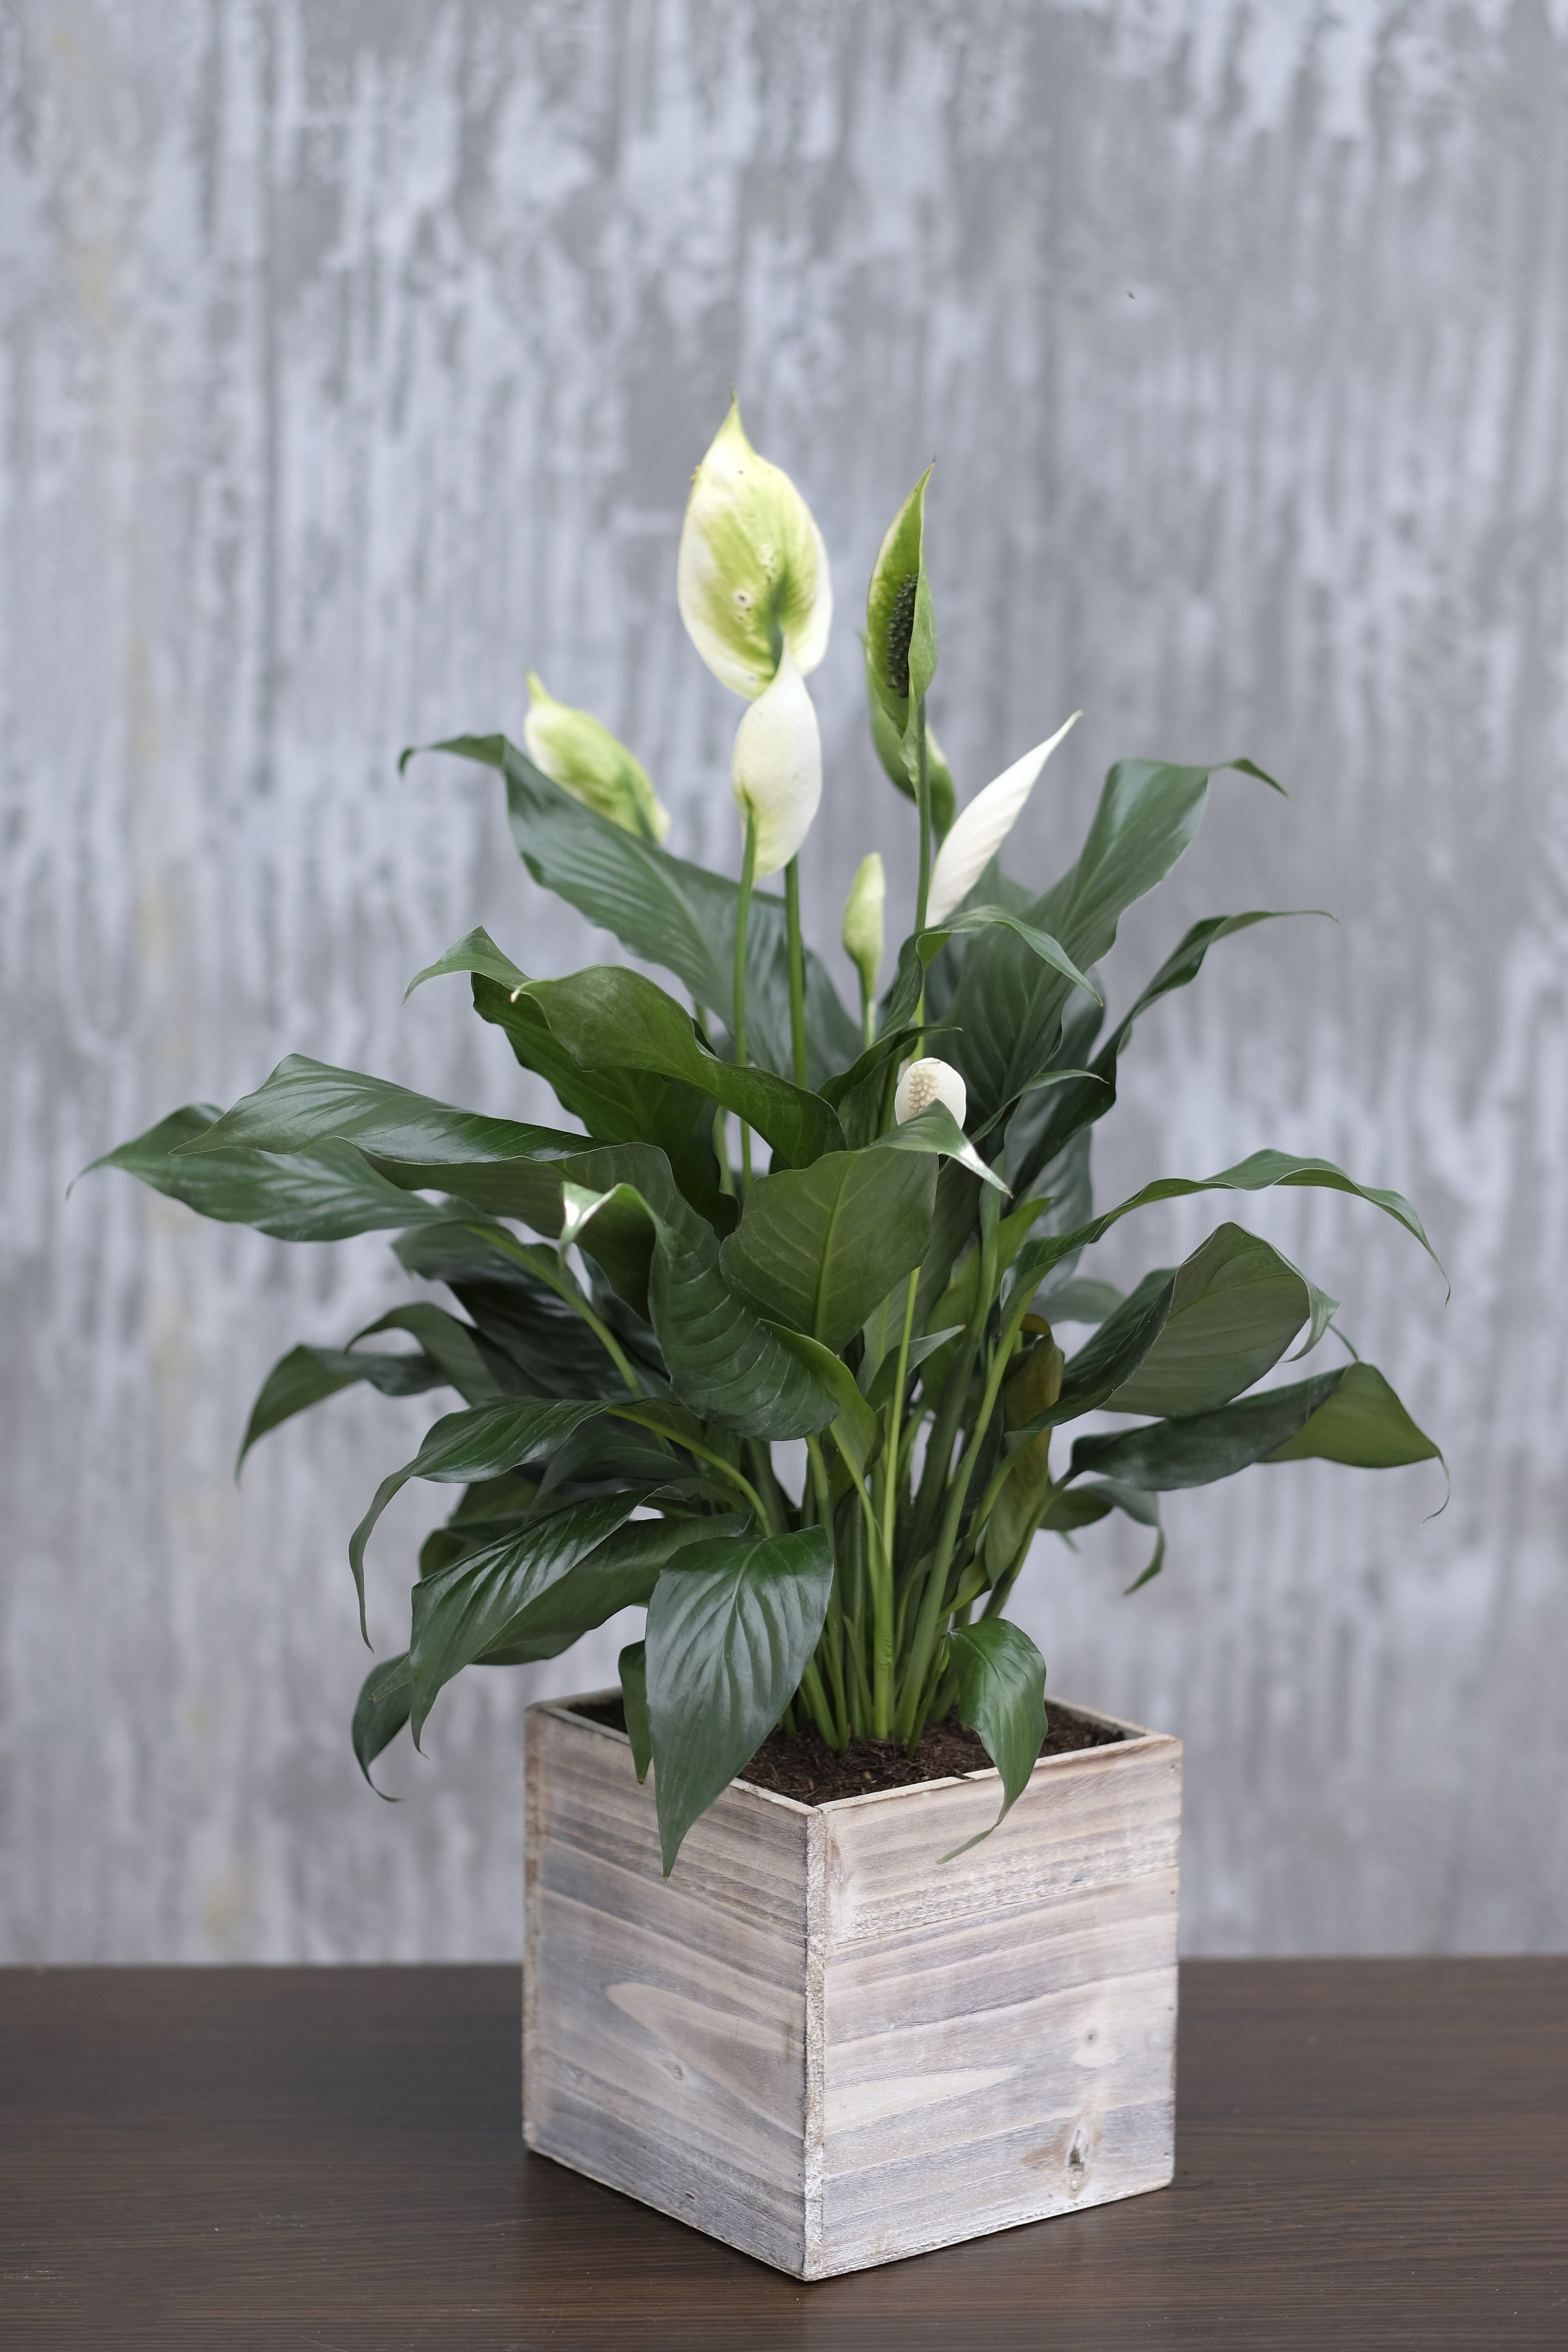 PEACE LILY | Decorations | Pinterest | Peace lily, Plants and House on classic peace lily plant, chinese evergreen house plant, marginata house plant, dragon plant, weeping fig house plant, holly house plant, artificial bamboo house plant, peace lily family plant, black gold lily plant, problems with peace lily plant, white and green leaves house plant, peace lily potted plant, croton house plant, peace plant brown leaves, peace lily plant benefits, zamiifolia house plant, droopy peace lily plant, pineapple plant house plant, funeral peace lily plant, black bamboo potted plant,